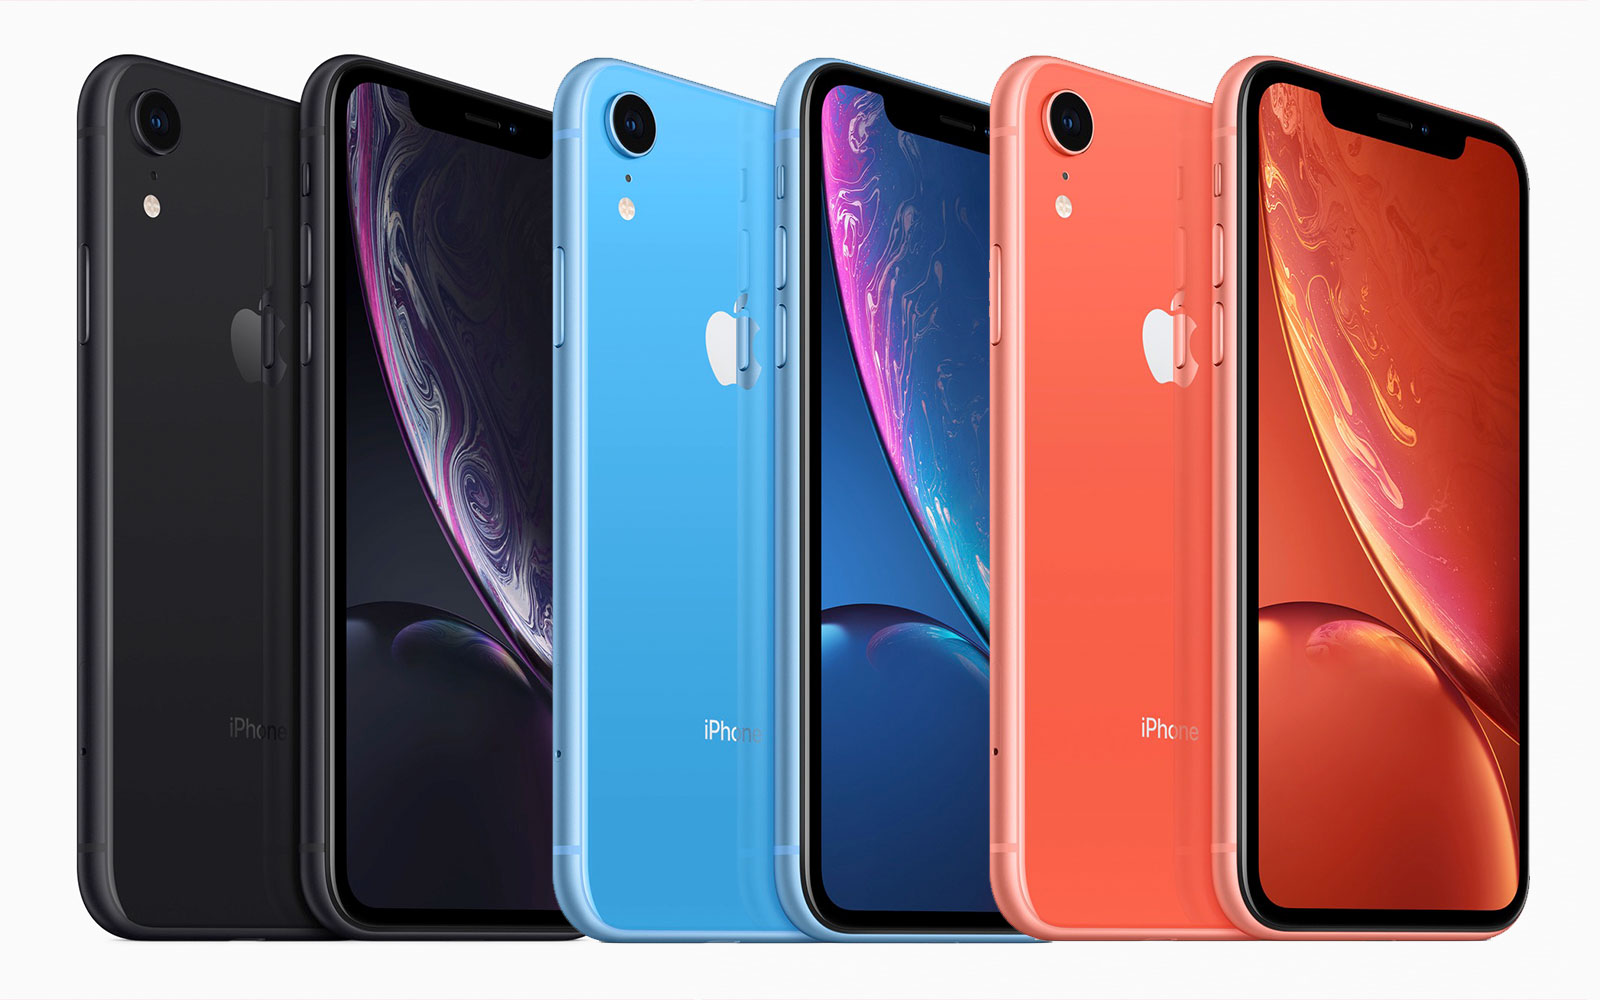 Apples iPhone Xr is an affordable iPhone X